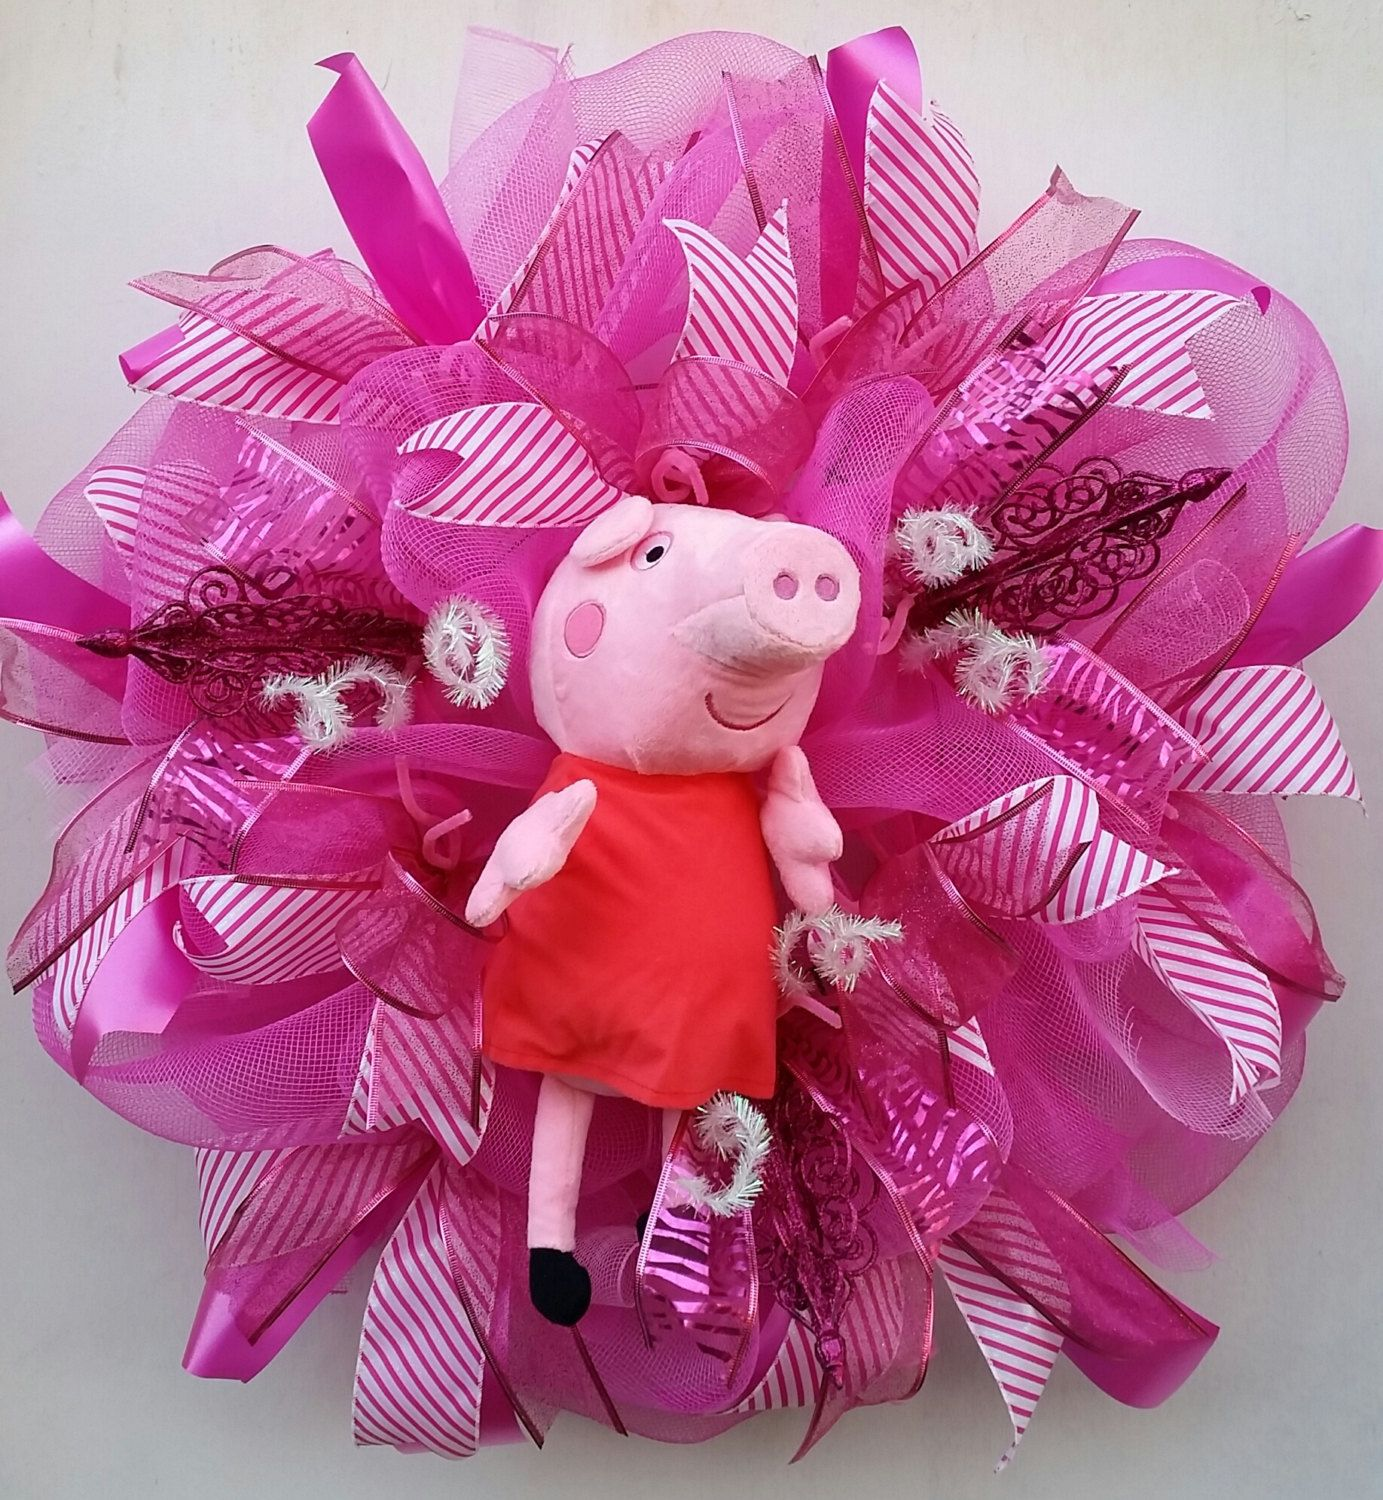 office valentine gifts. Peppa Pig Wreath I Love Home Bedroom Decor Office Pretty In Pink Birthday Valentine Gifts D